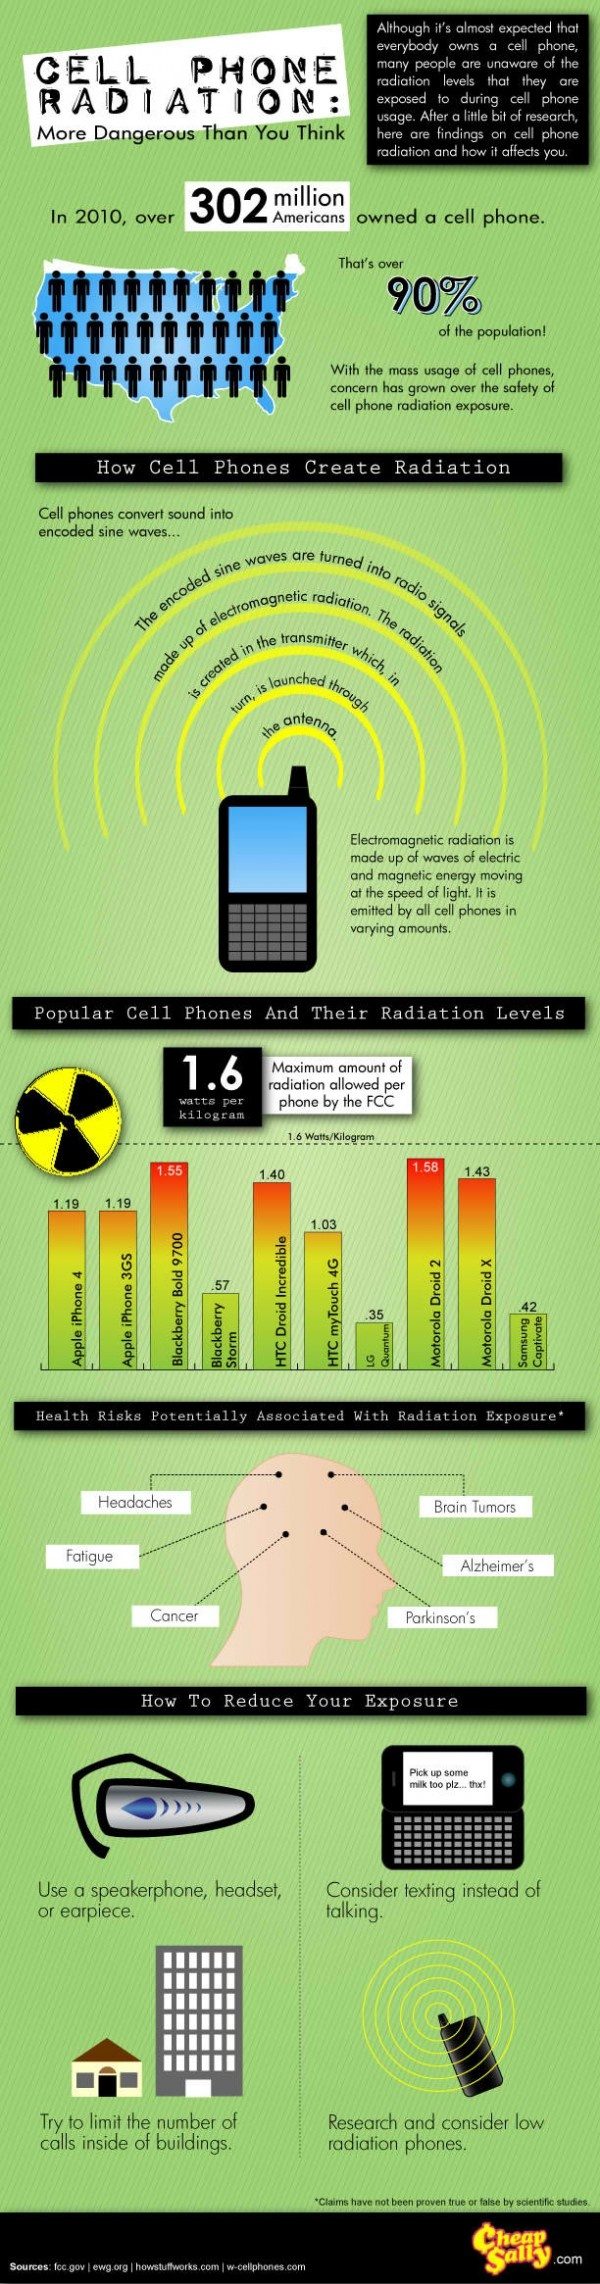 Cell Phone Radiation: More Dangerous Than You Think ...